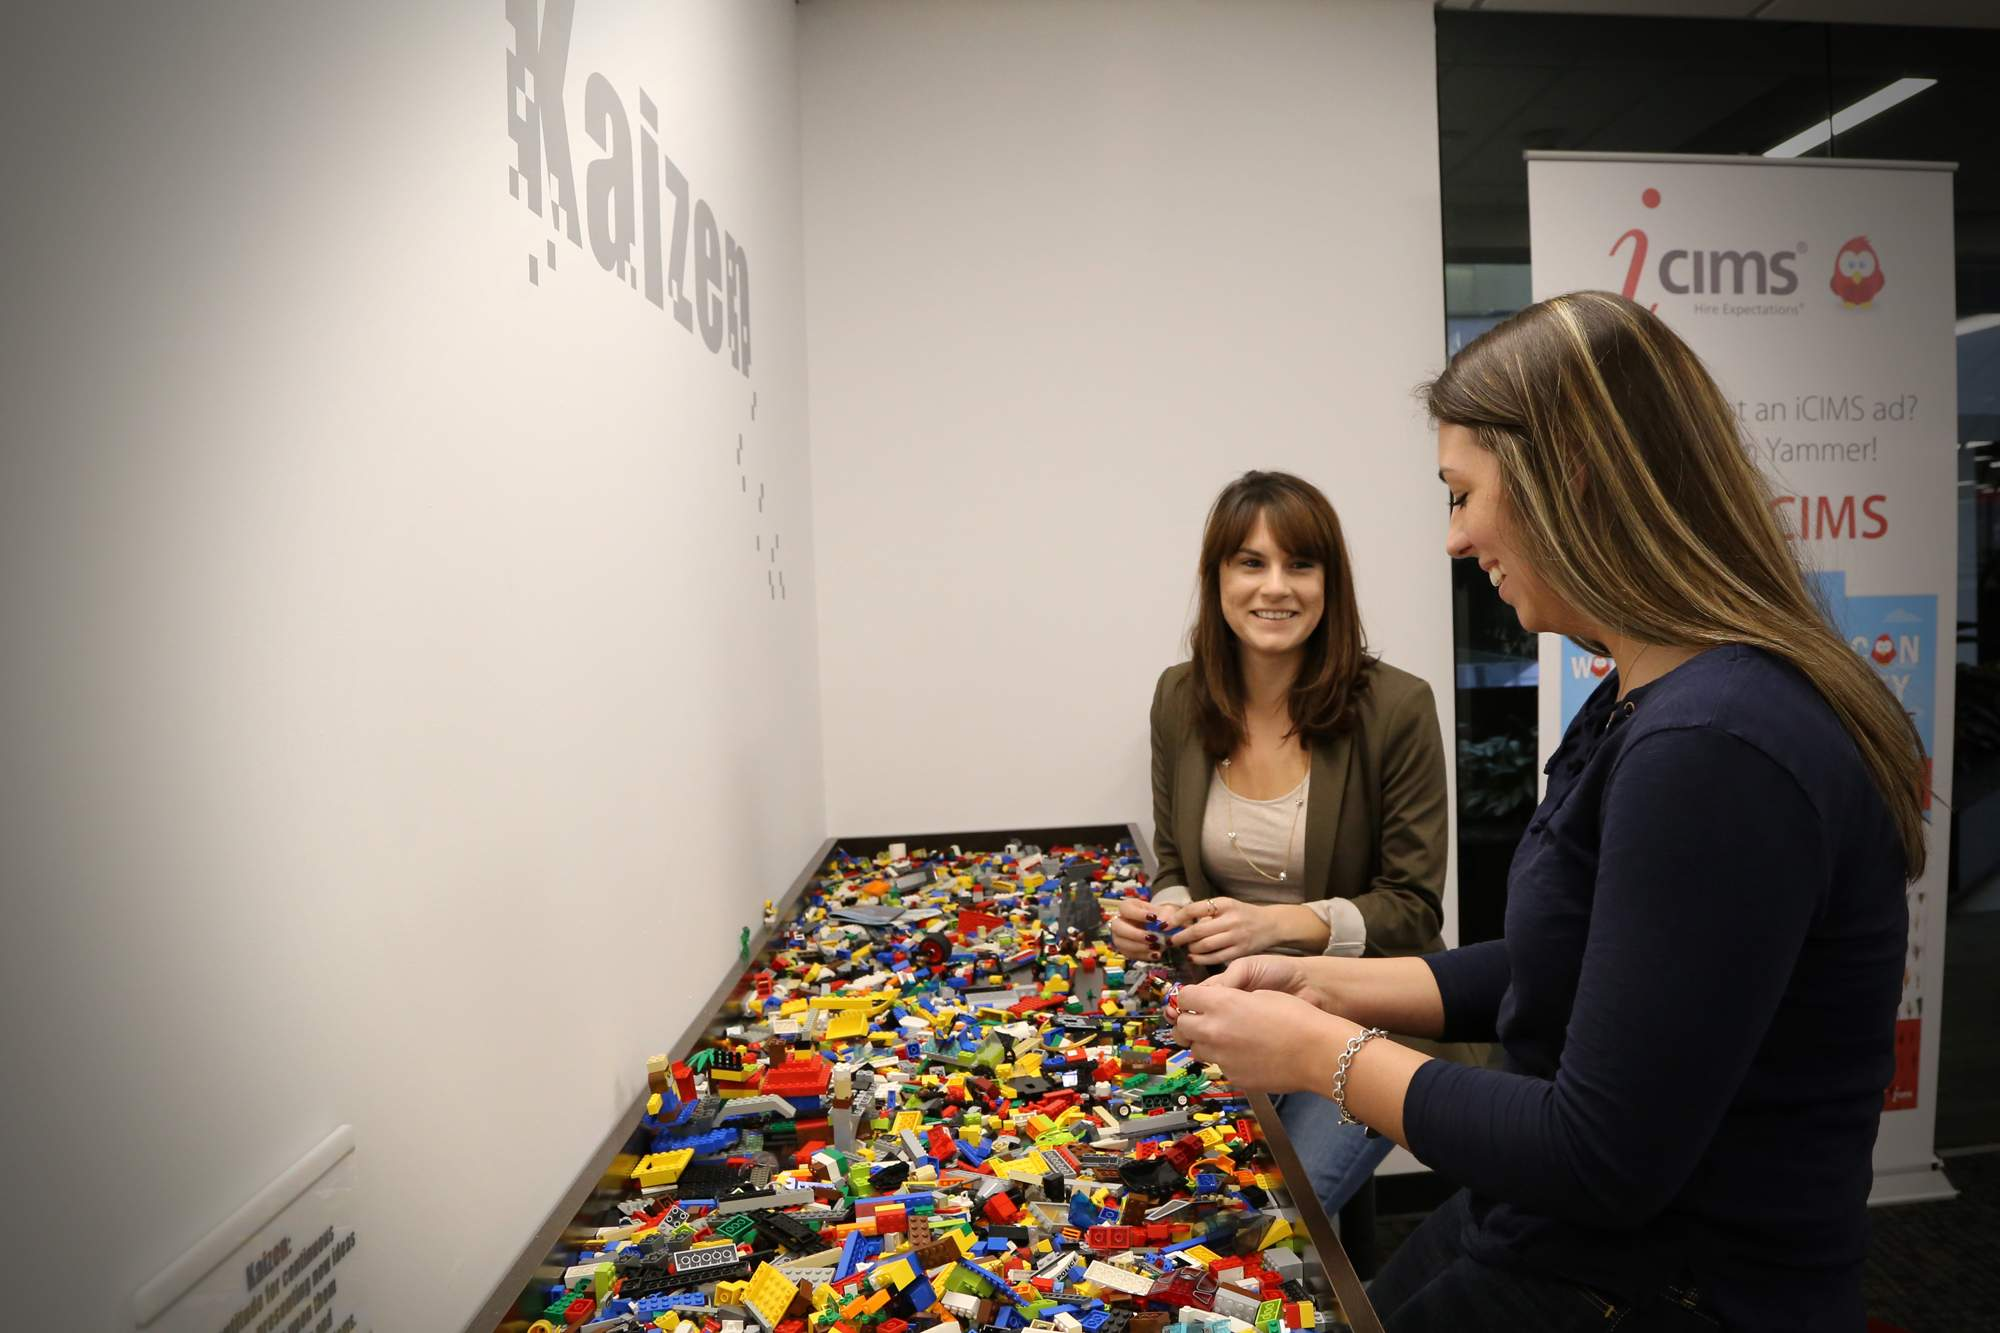 Employees meet at the office's designated Lego table to demonstrate core competency in a unique way.